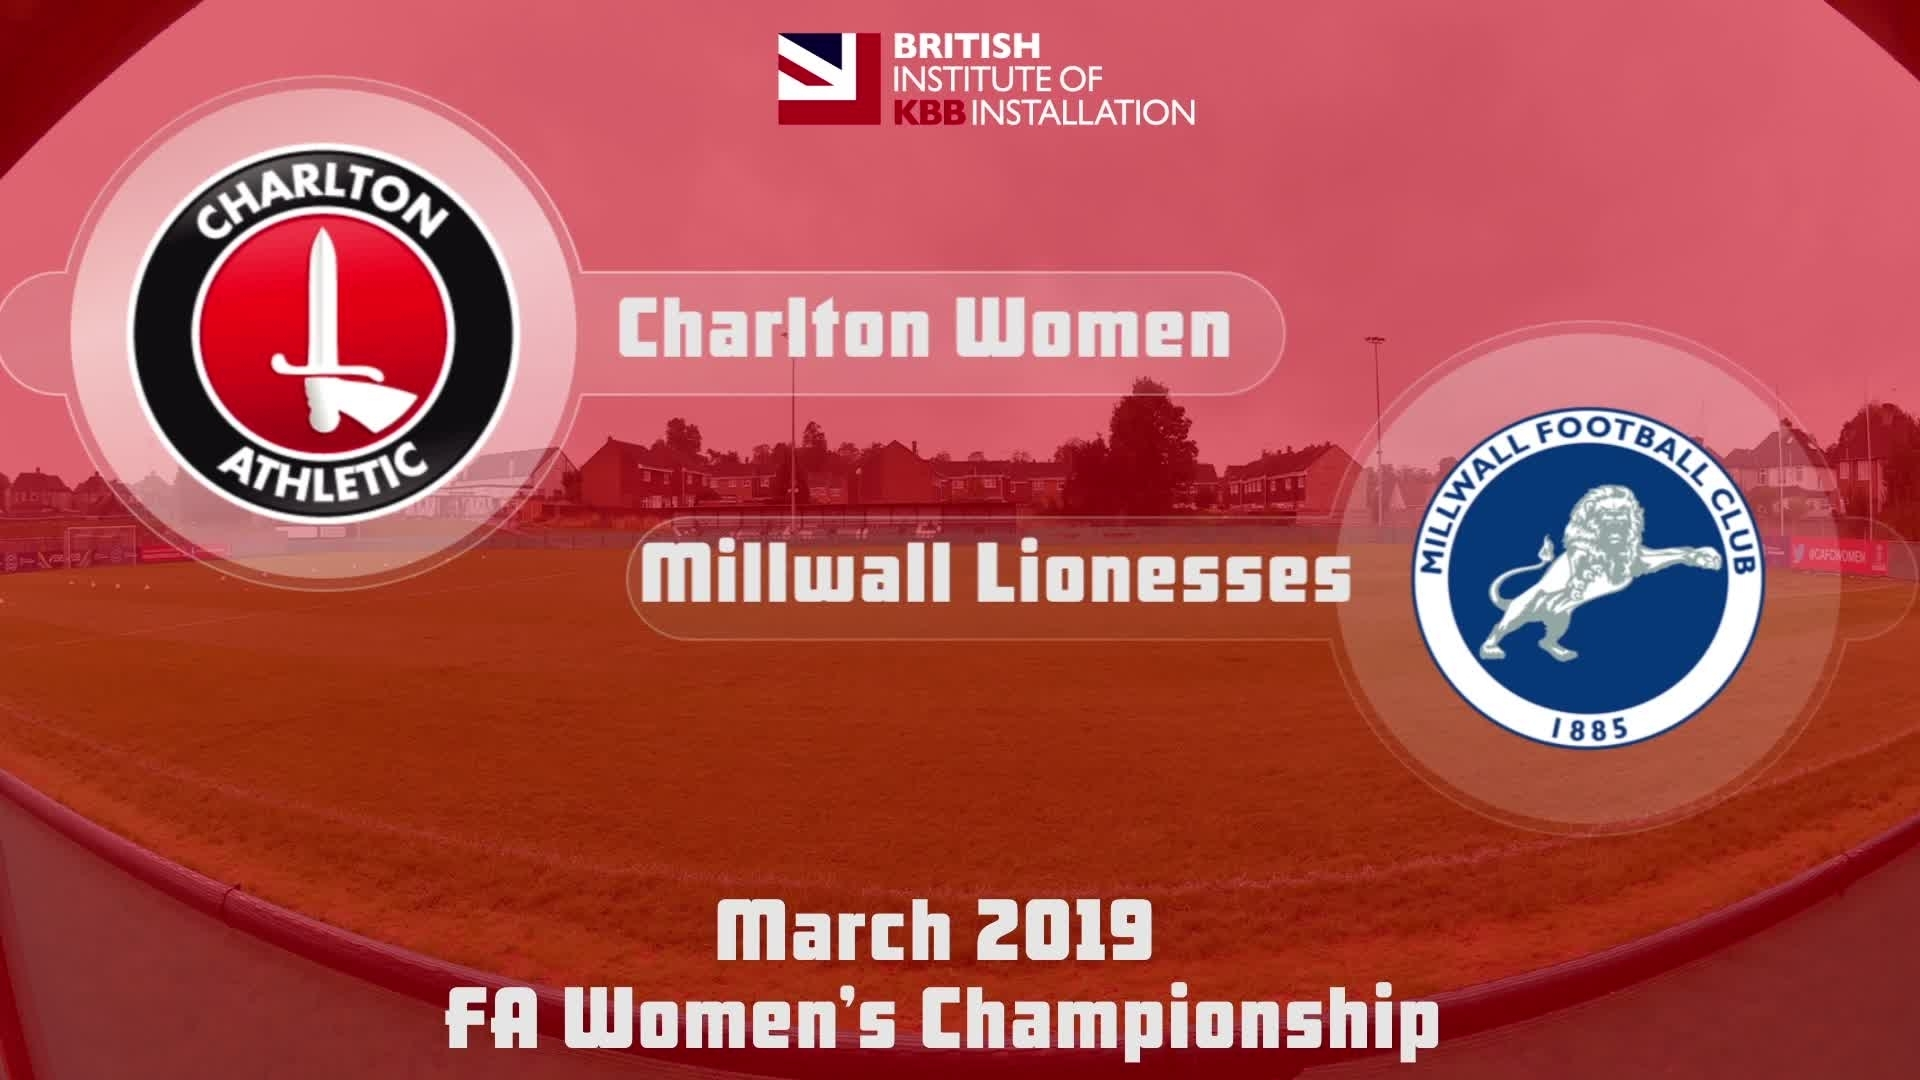 WOMEN'S HIGHLIGHTS | Charlton Women 3 Millwall Lionesses 0 (Mar 2019)